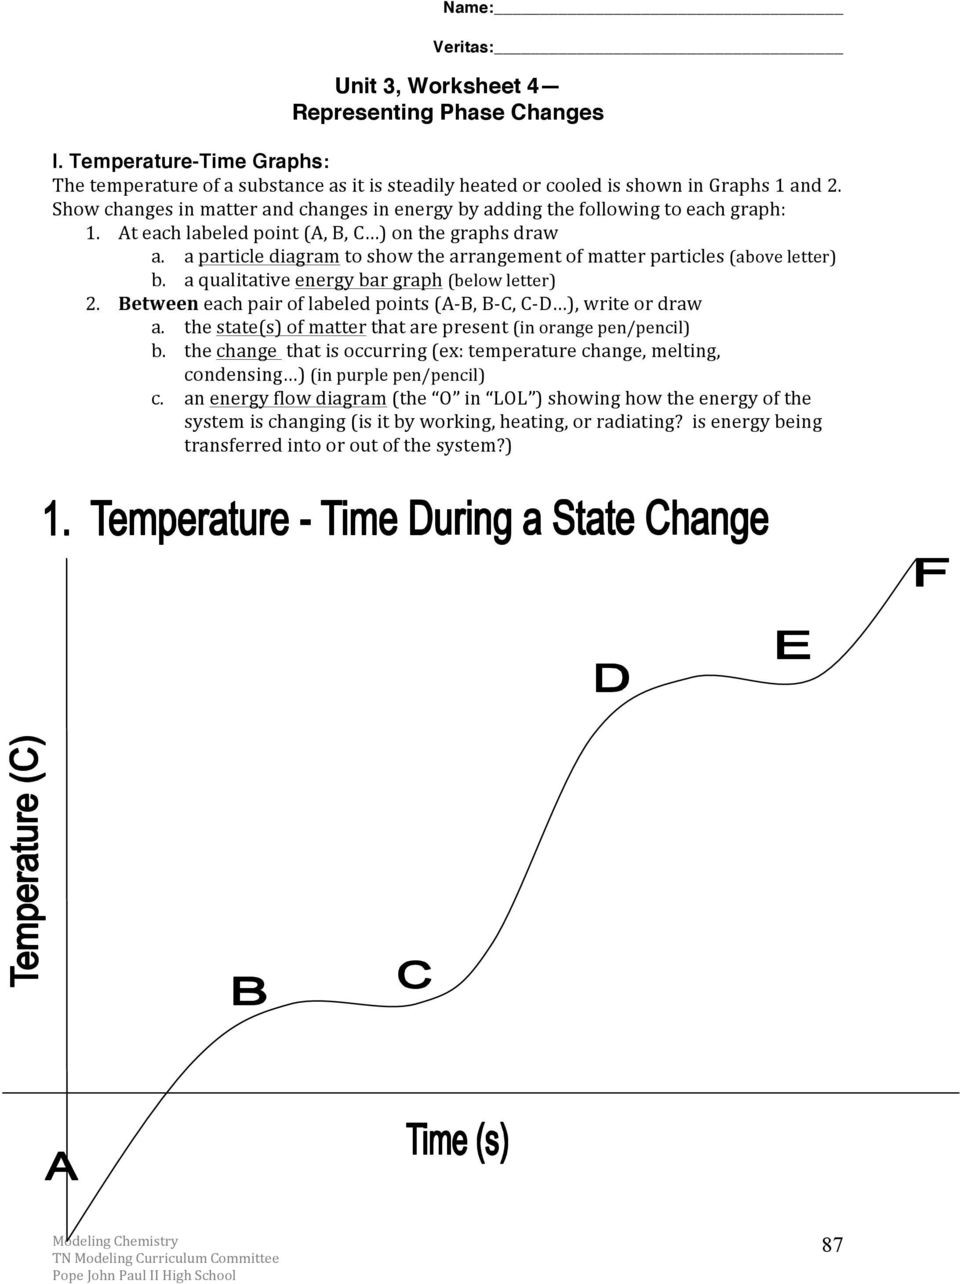 Phase Change Worksheet Answers Chemistry Unit 3 Reading assignment Energy and Kinetic